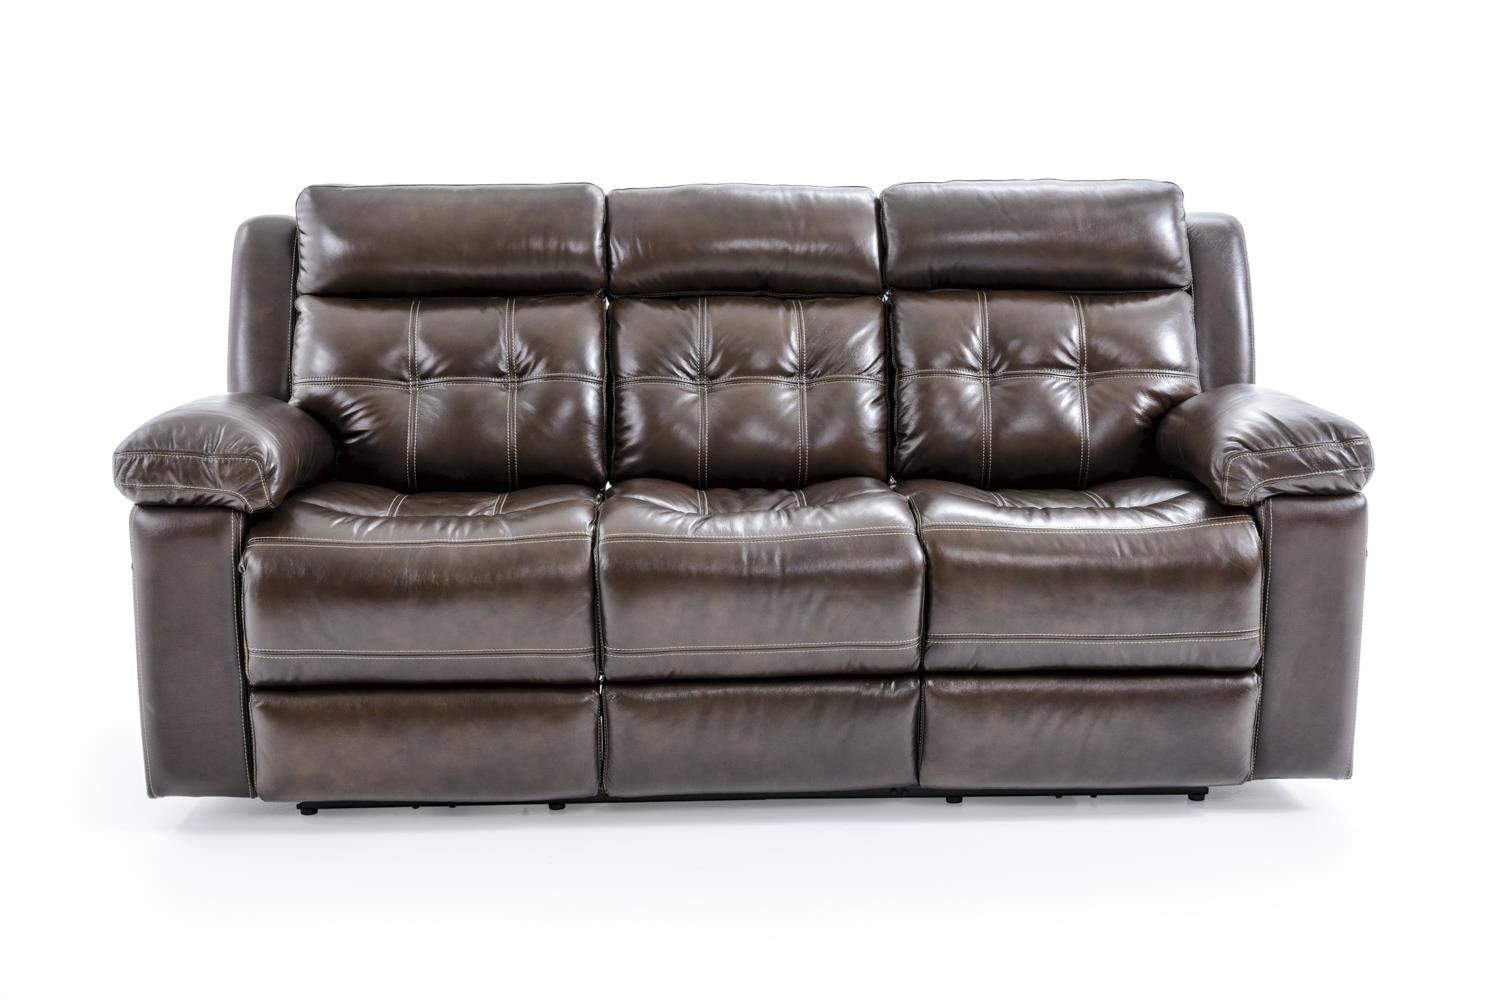 Electric Motion Sofa with Tufting